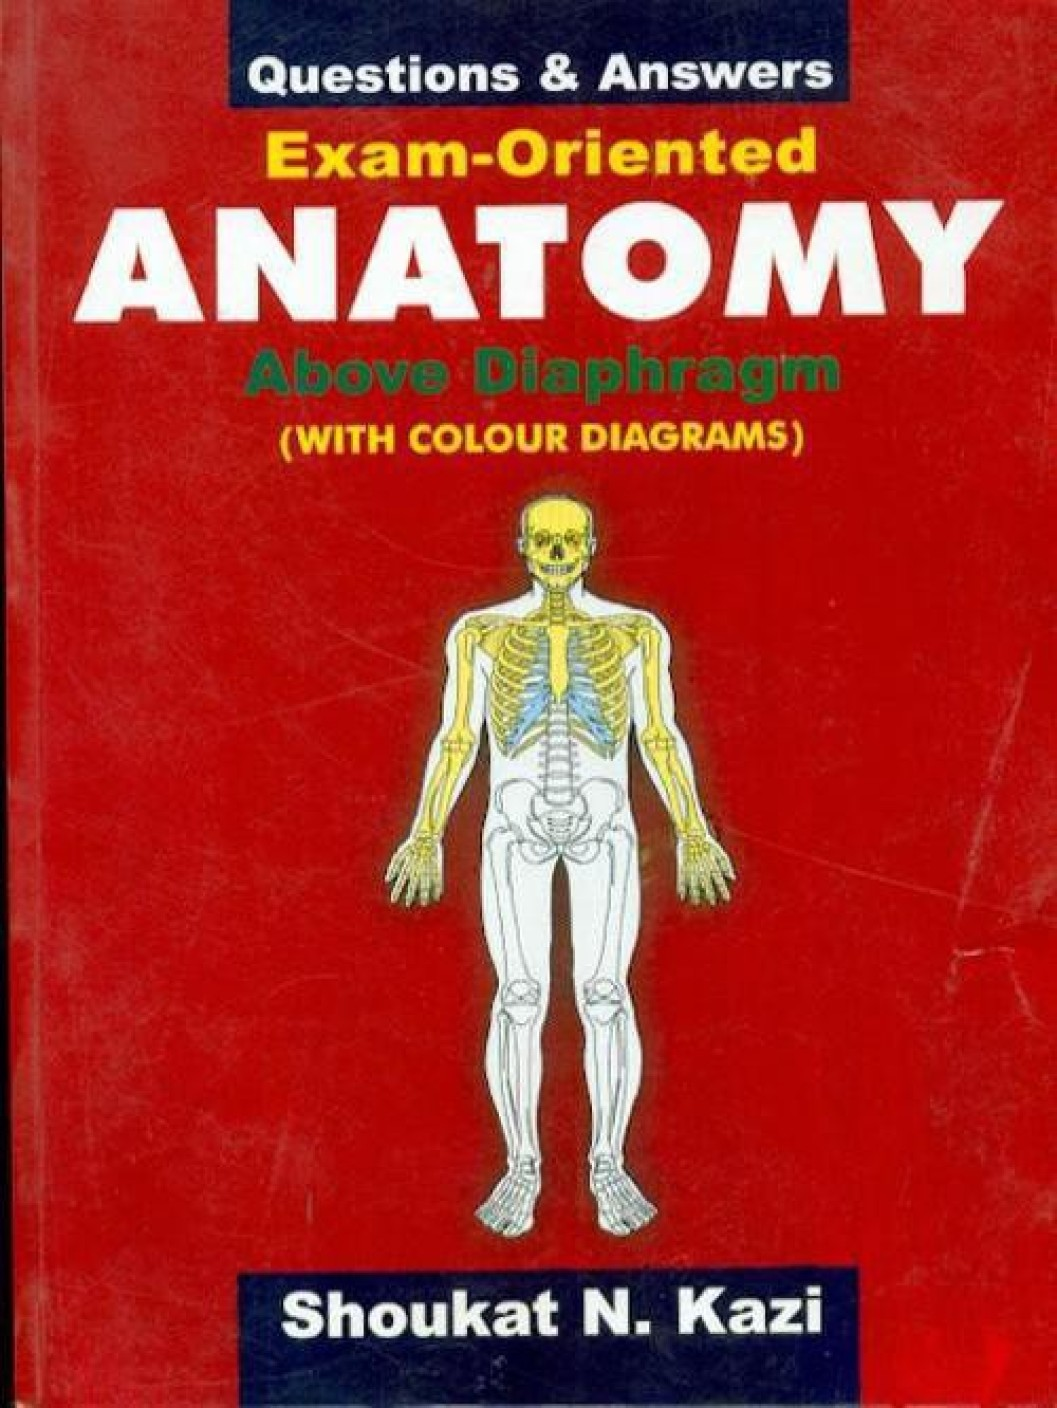 anatomy and physiology questions and answers